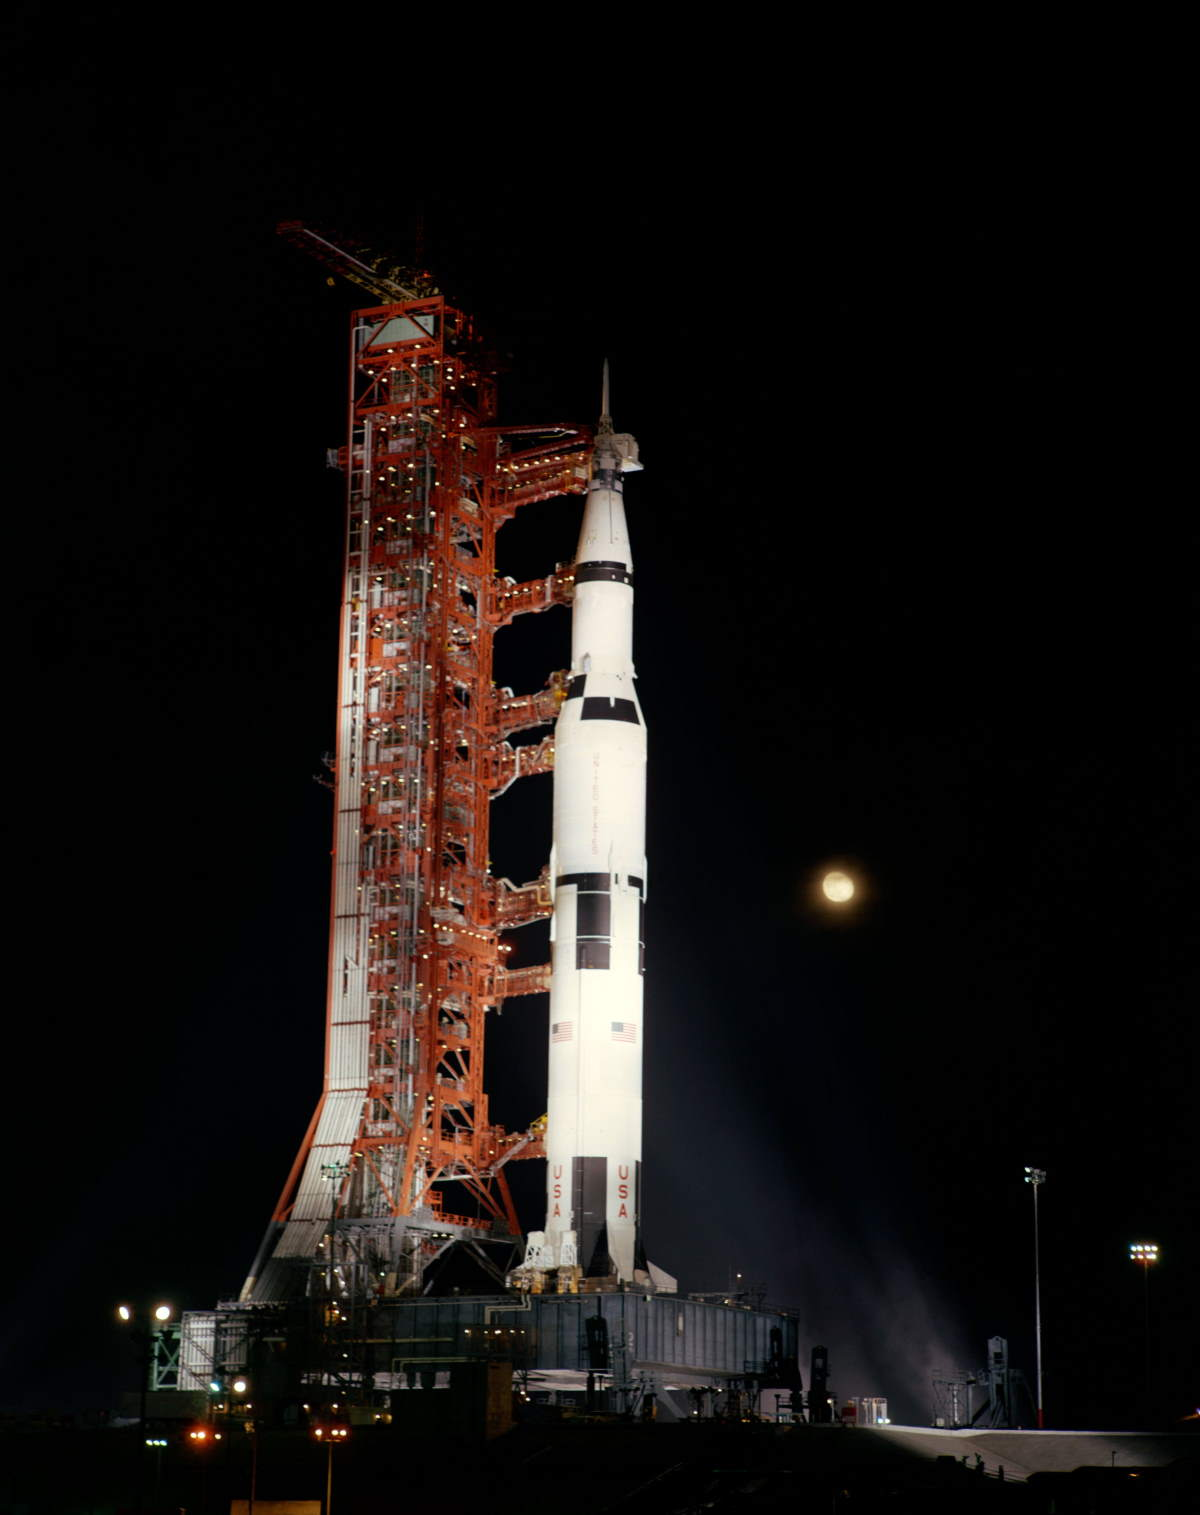 Apollo 12 at the launchpad 39A